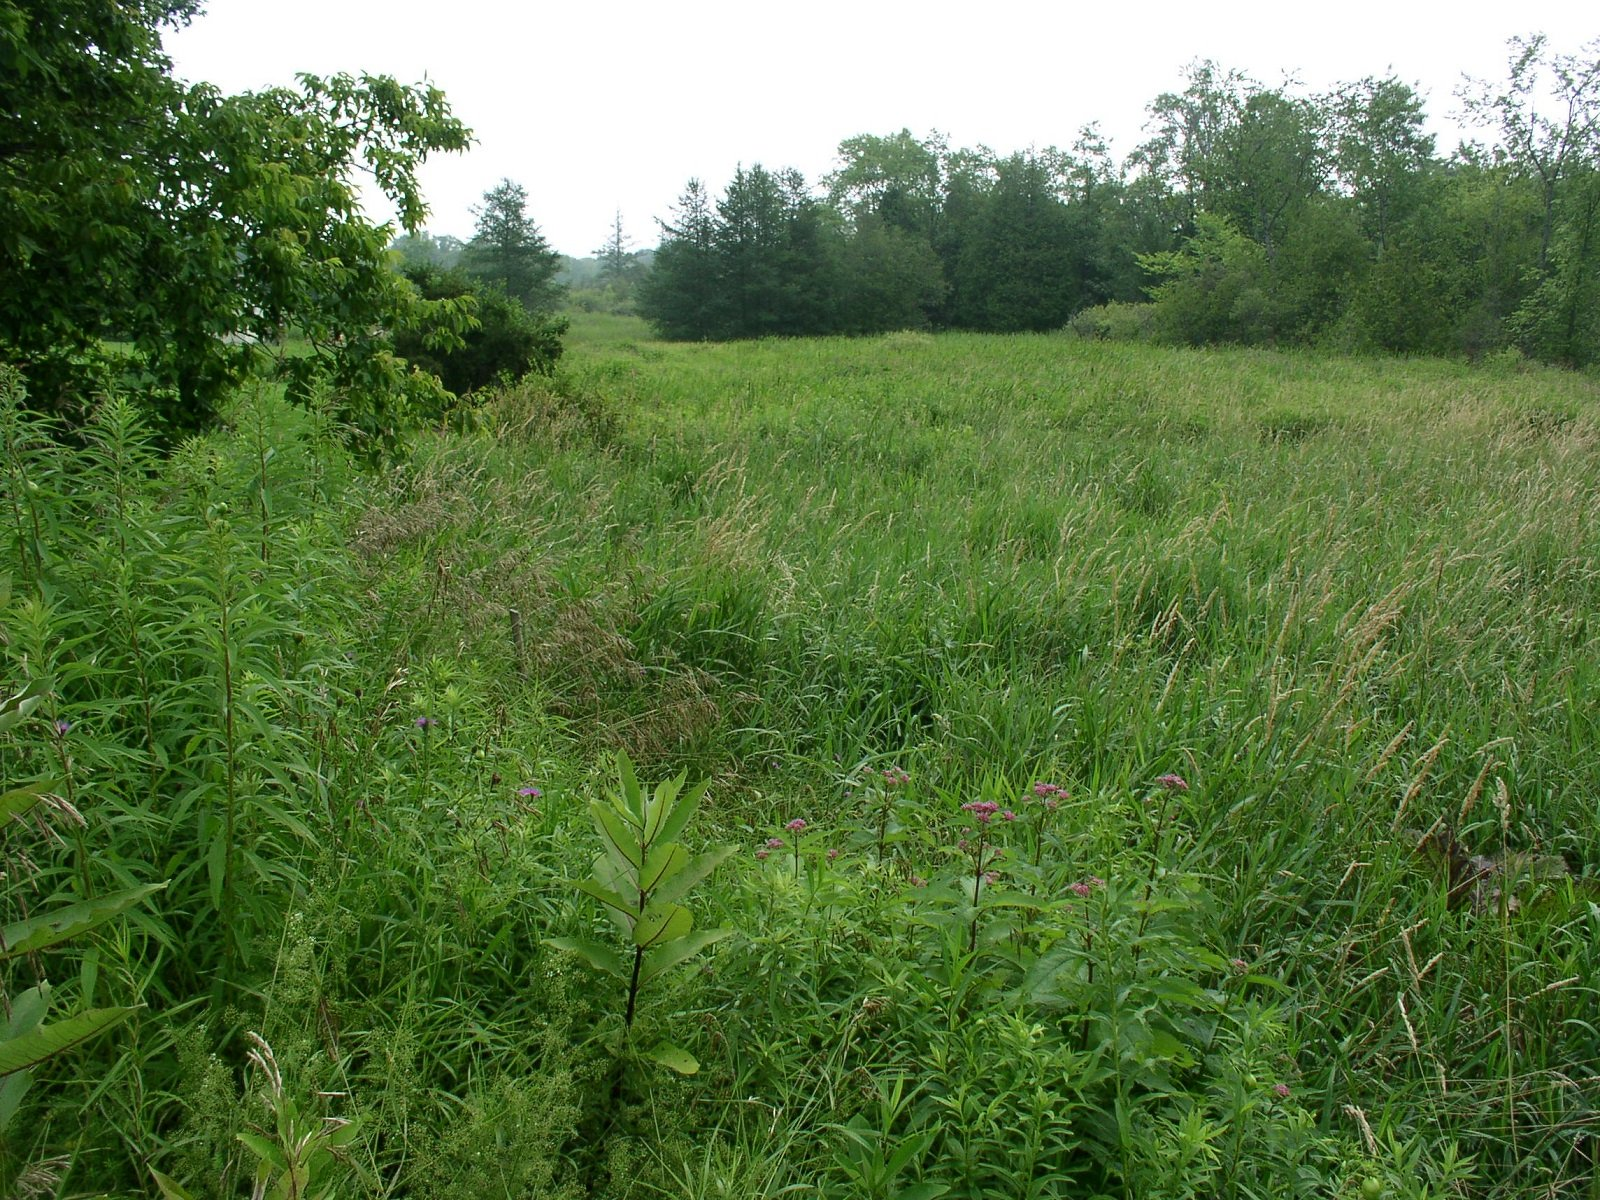 Easement area prior to restoration inundated with Reed Canary grass. Photo taken from edge of road